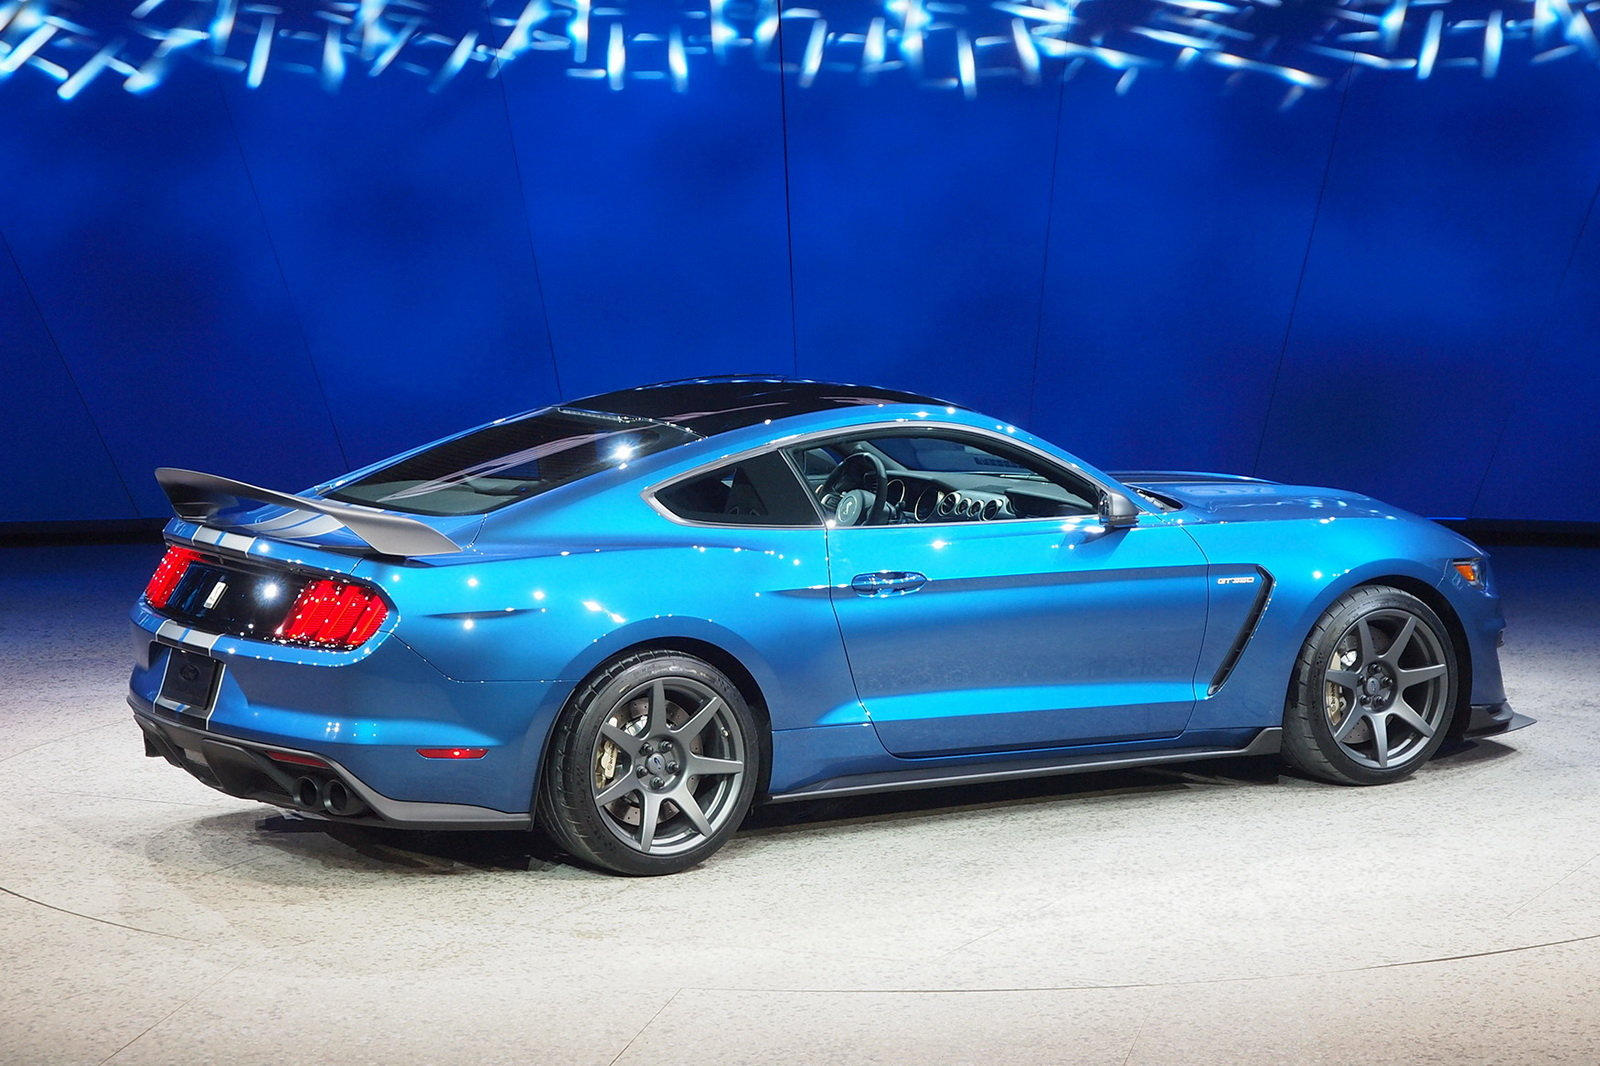 2016 Ford Mustang Shelby GT350R Rear Side Exterior